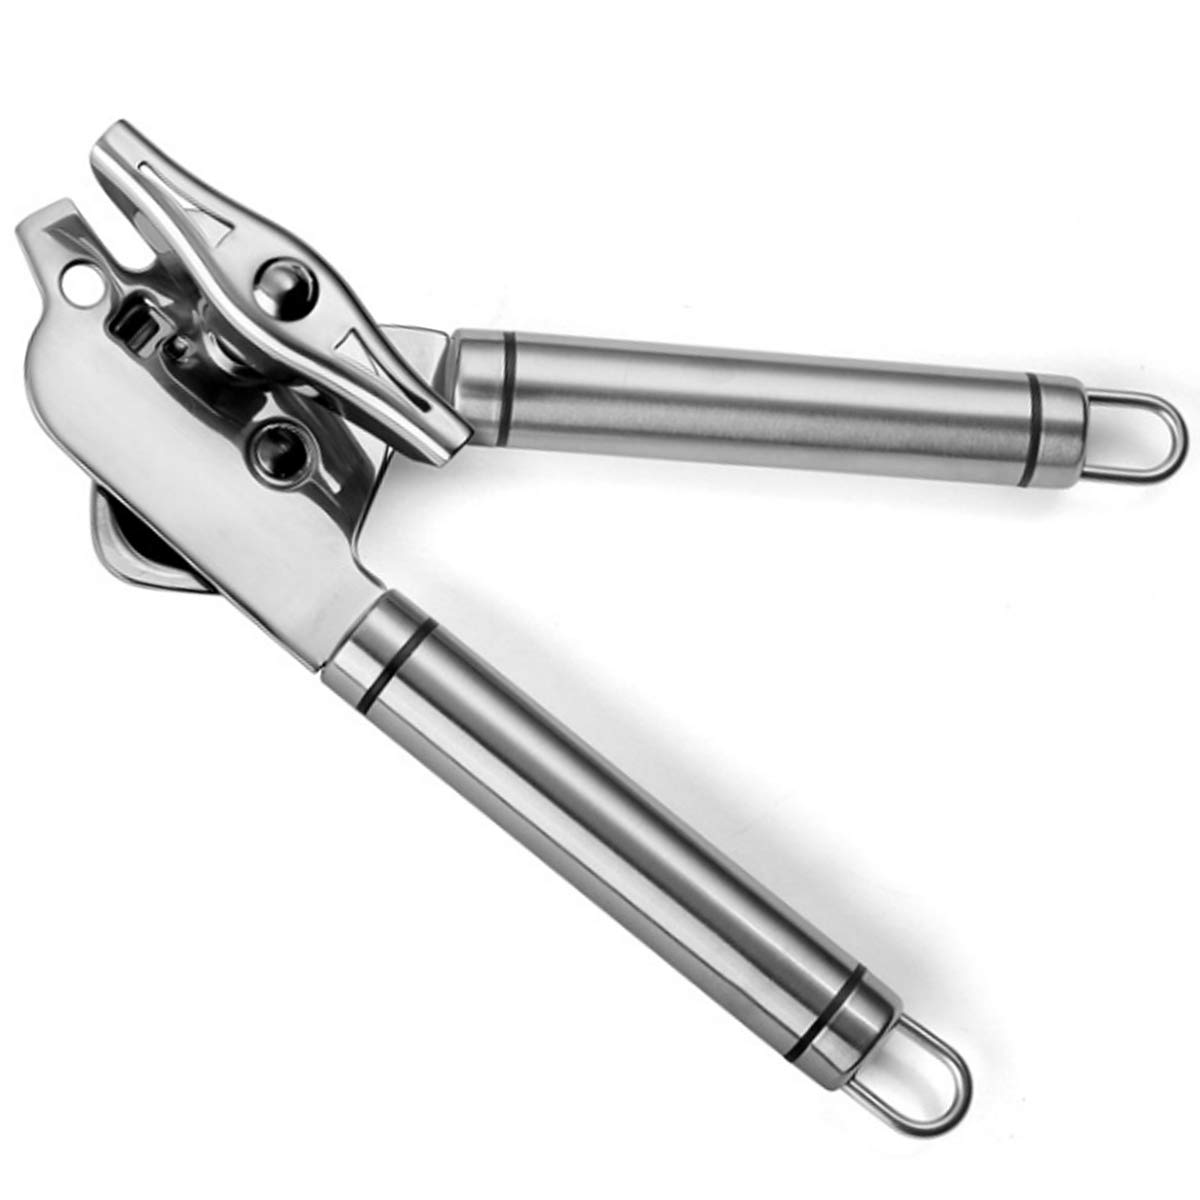 Professional 304 Stainless Steel Can Opener Manual for Seniors With Arthritis Jar Opener and Bottle Opener,Heavy Duty Can Openers Smooth Edge,Hand Can Opener Dishwasher Safe. HJYC